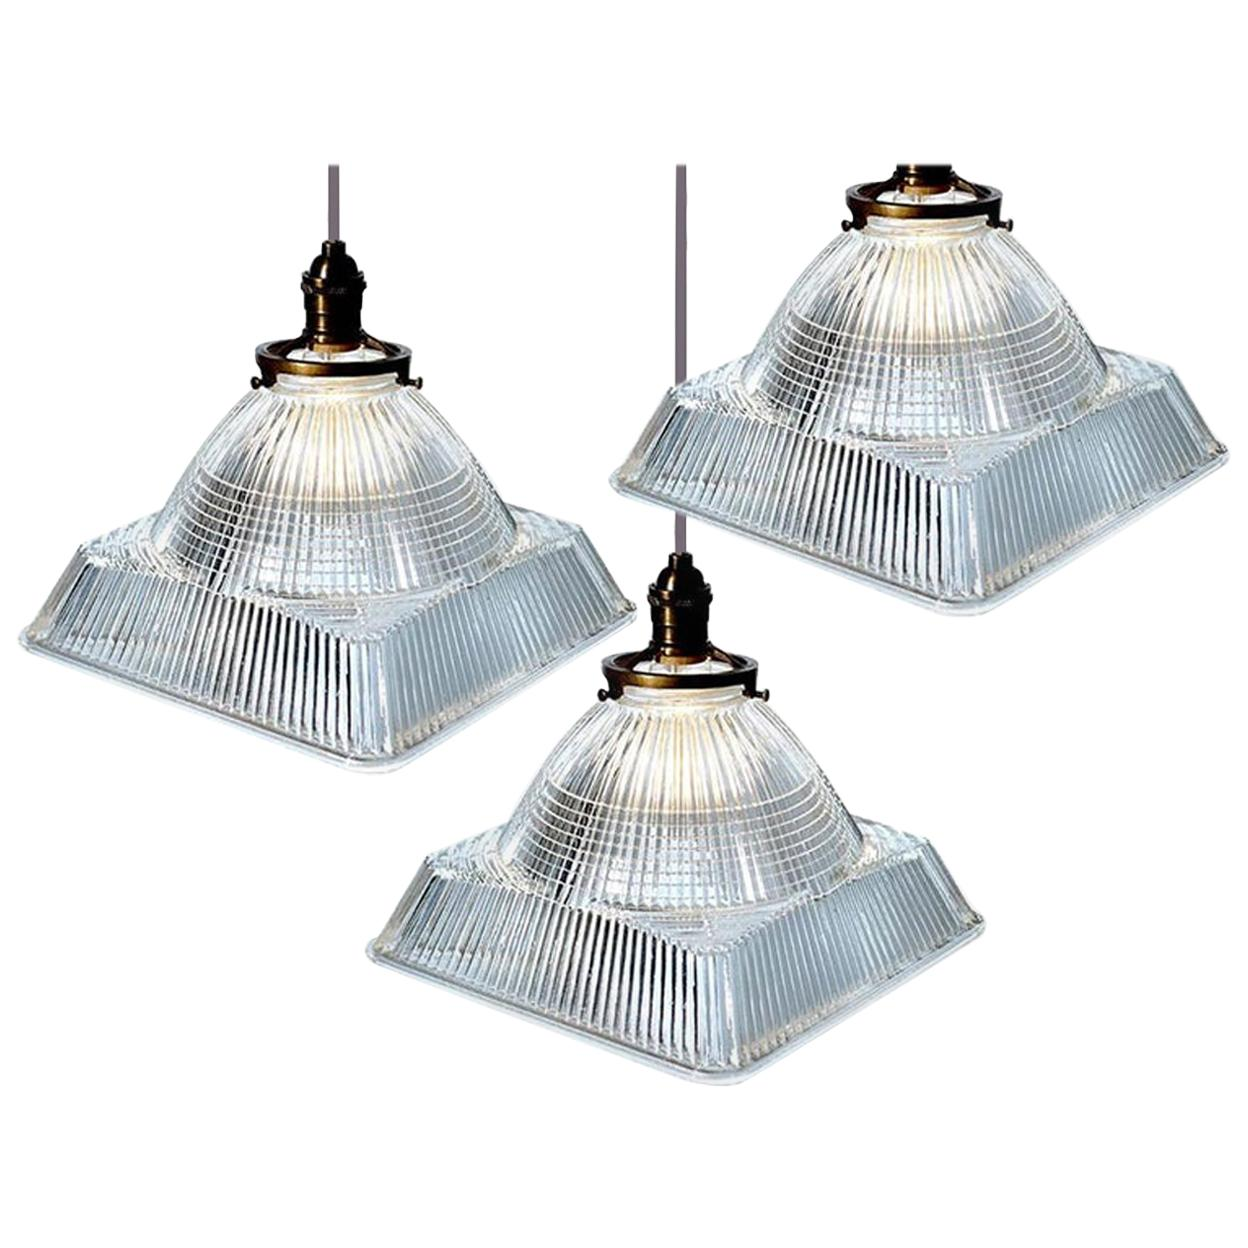 Dome over Square Holophane Pendants